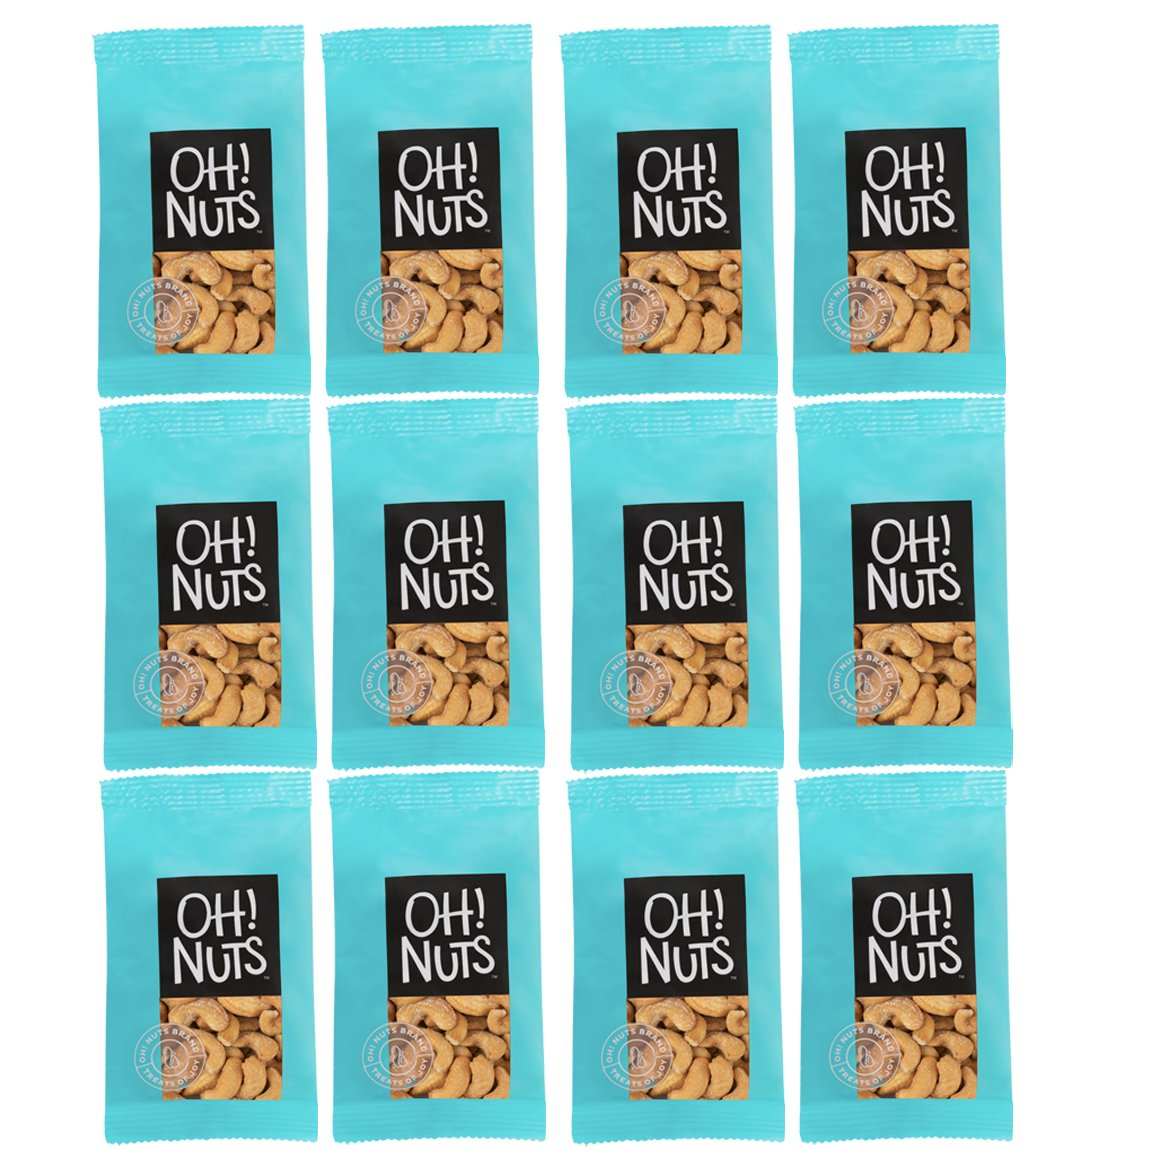 Oh! Nuts Natures Large Cashews | Roasted Salted Cashew Nut | Healthy Premium On the Go Snacks Individual Packs | Kind to your Body